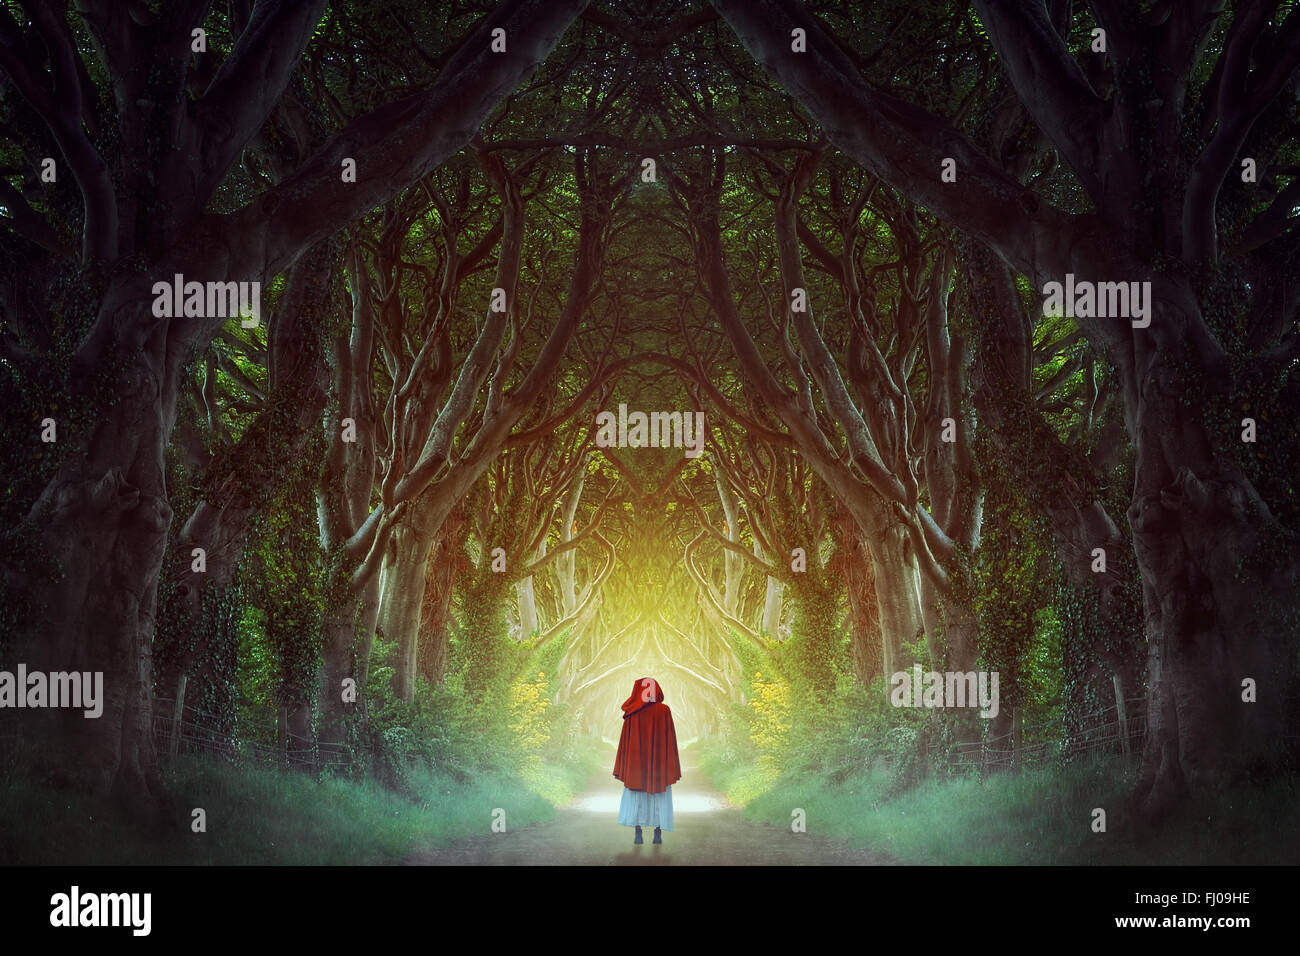 Dark Hedges forest in northern Ireland manipulation . Fantasy and surreal - Stock Image